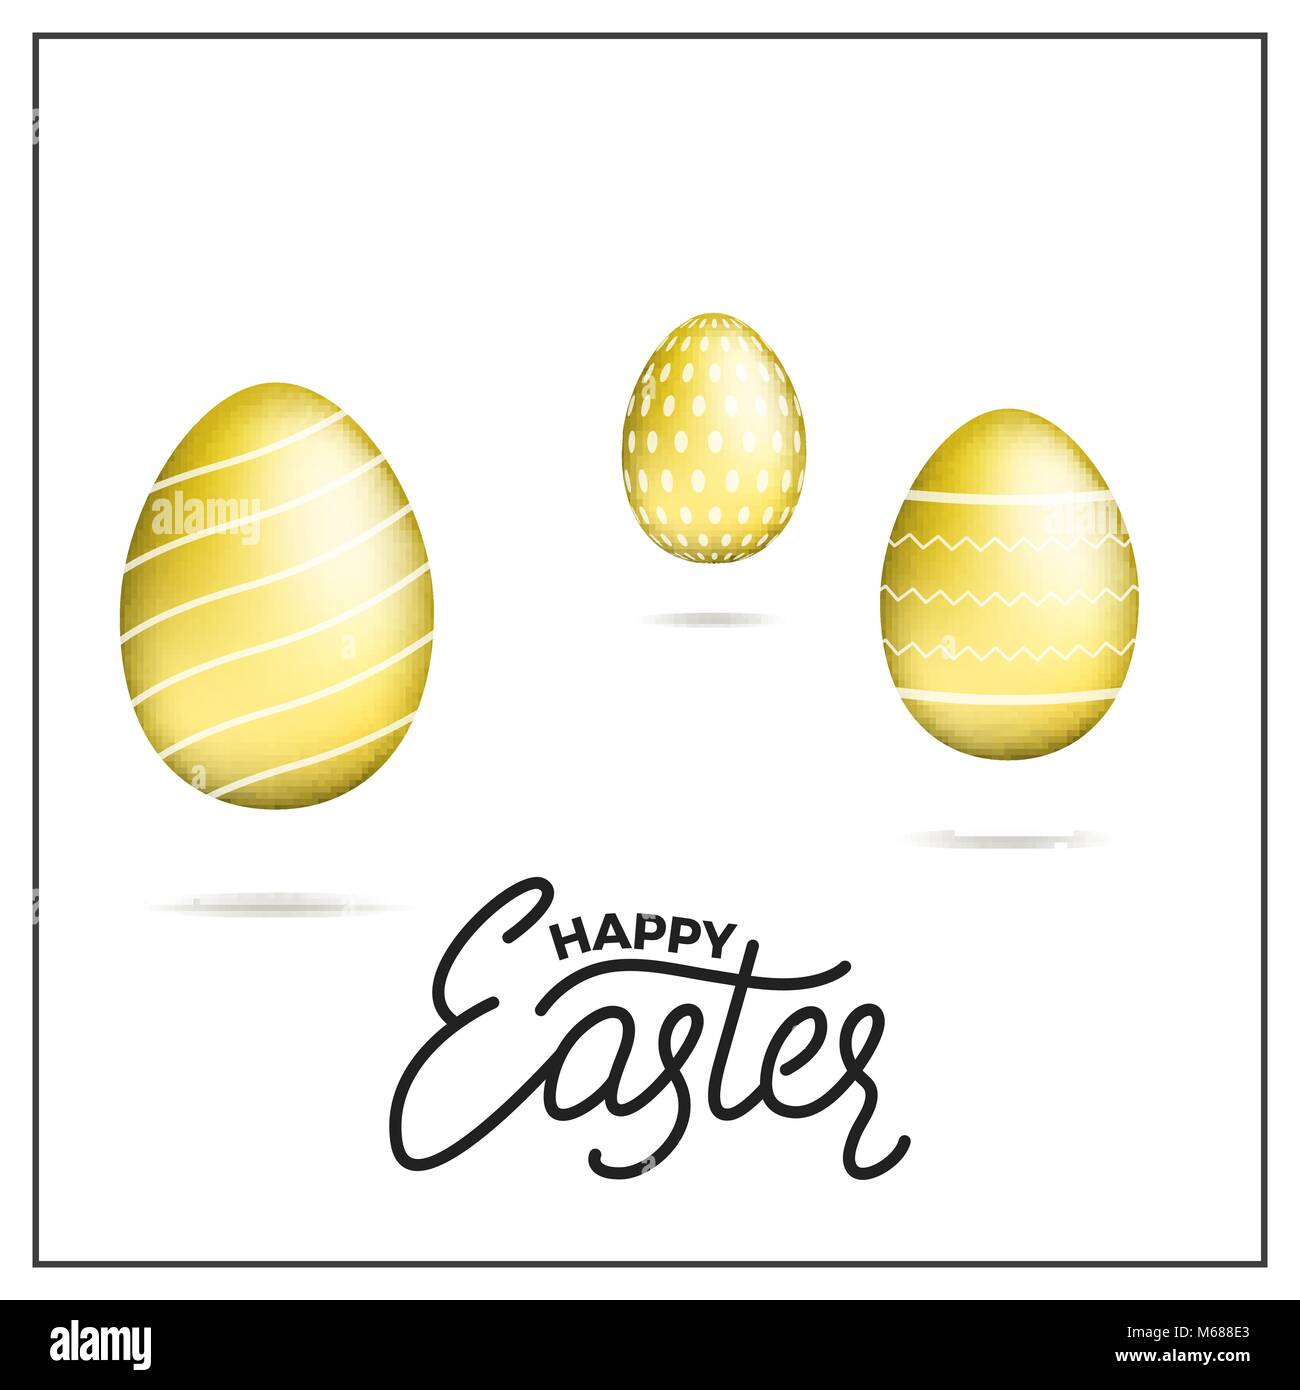 Easter. Gold eggs and Happy Easter script lettering. Easter holiday design - Stock Image